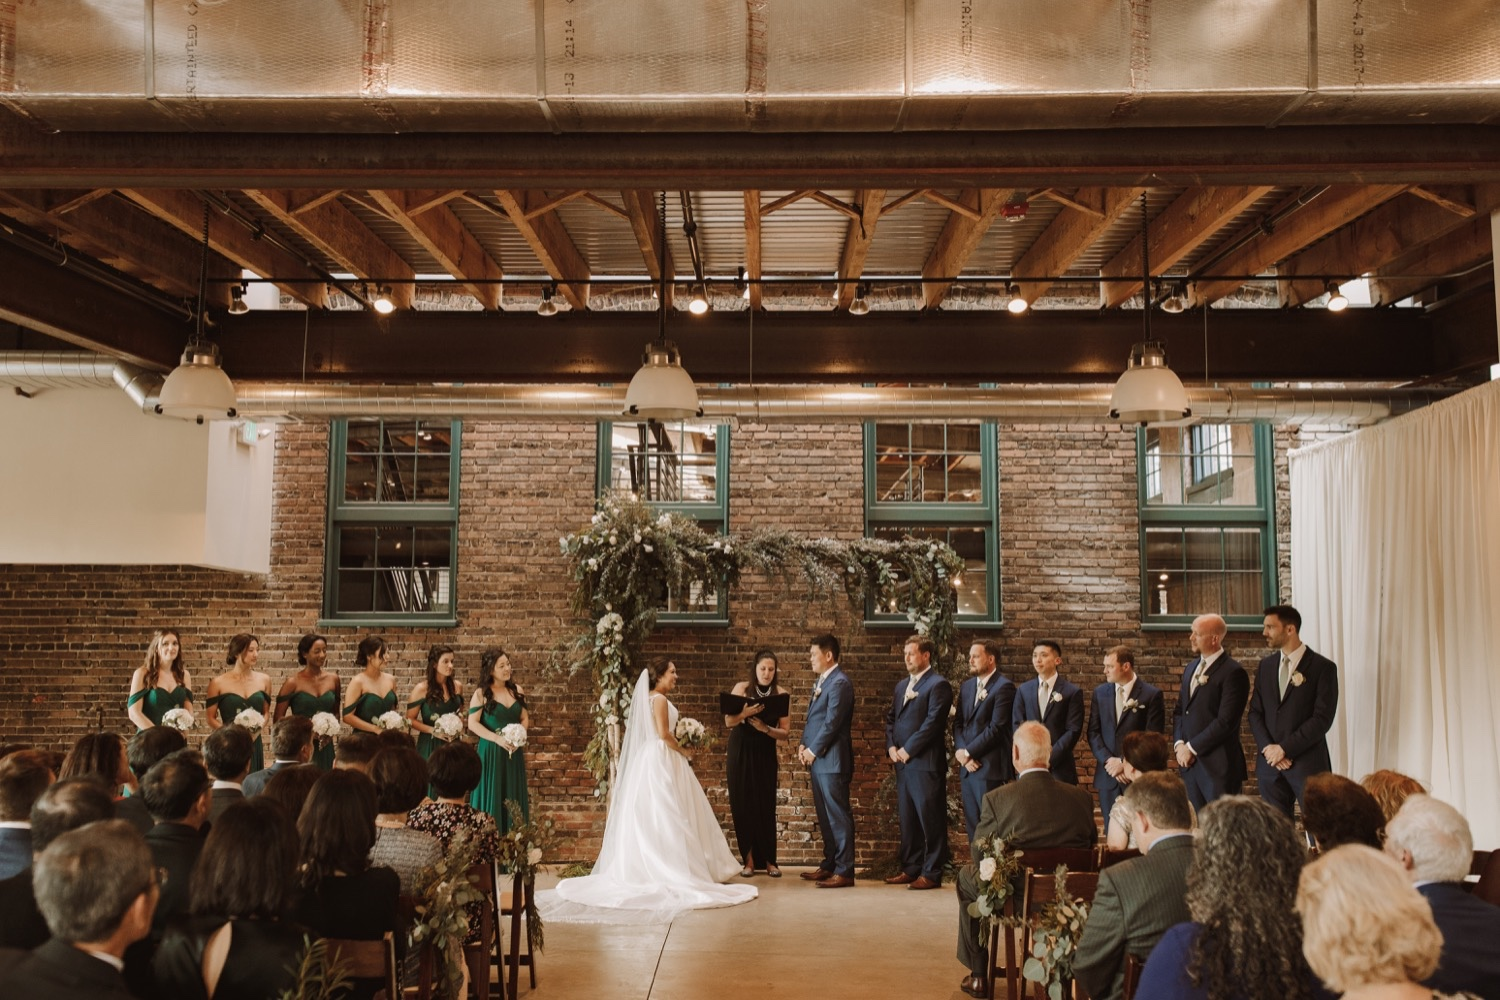 Best Maryland Wedding Venues | The Winslow Room Wedding Ceremony